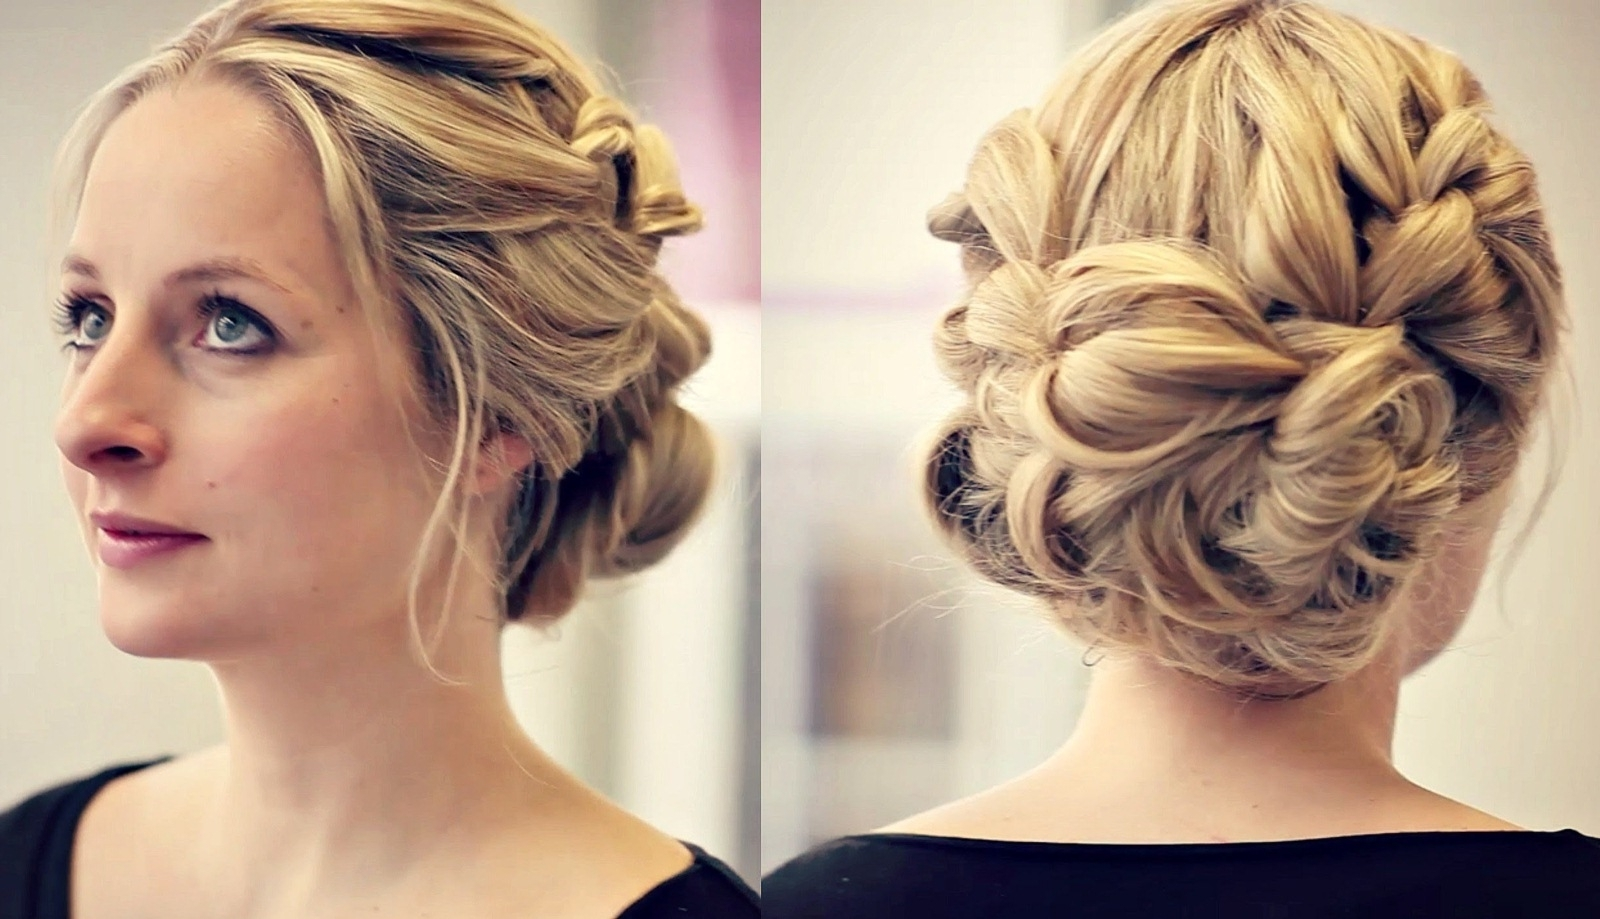 Updo Hairstyles For Weddings Mother Of The Bride – Hairstyle For In Updo Hairstyles For Mother Of The Bride (Gallery 2 of 15)